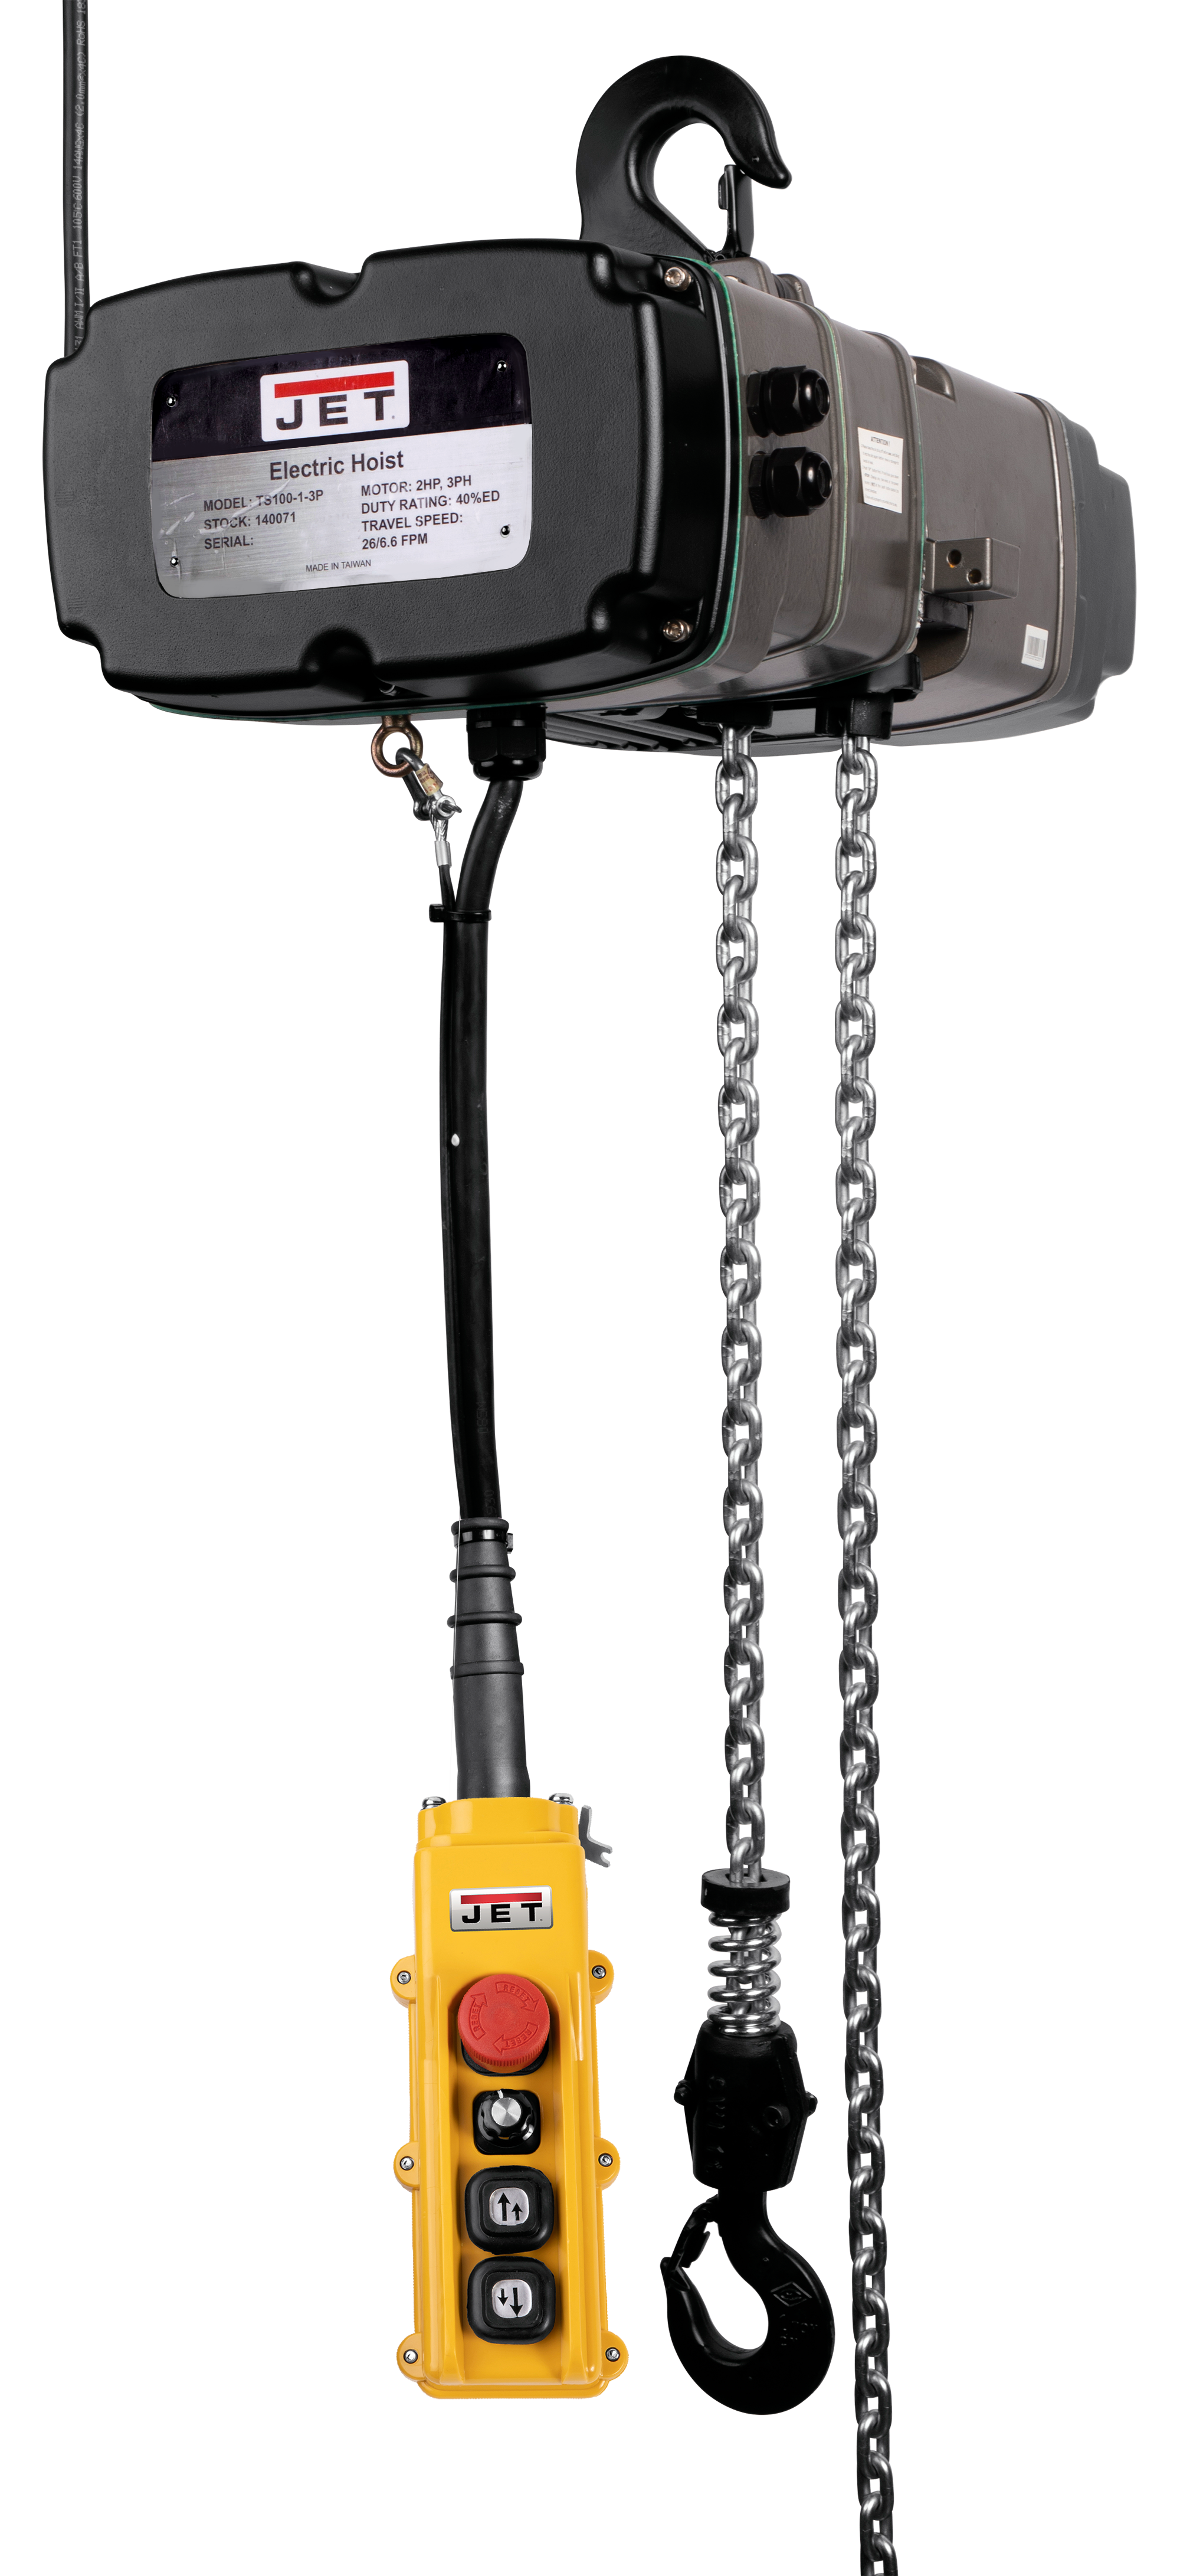 TS200-460-010,2-Ton Two Speed Electric Chain Hoist  3-Phase 10' Lift